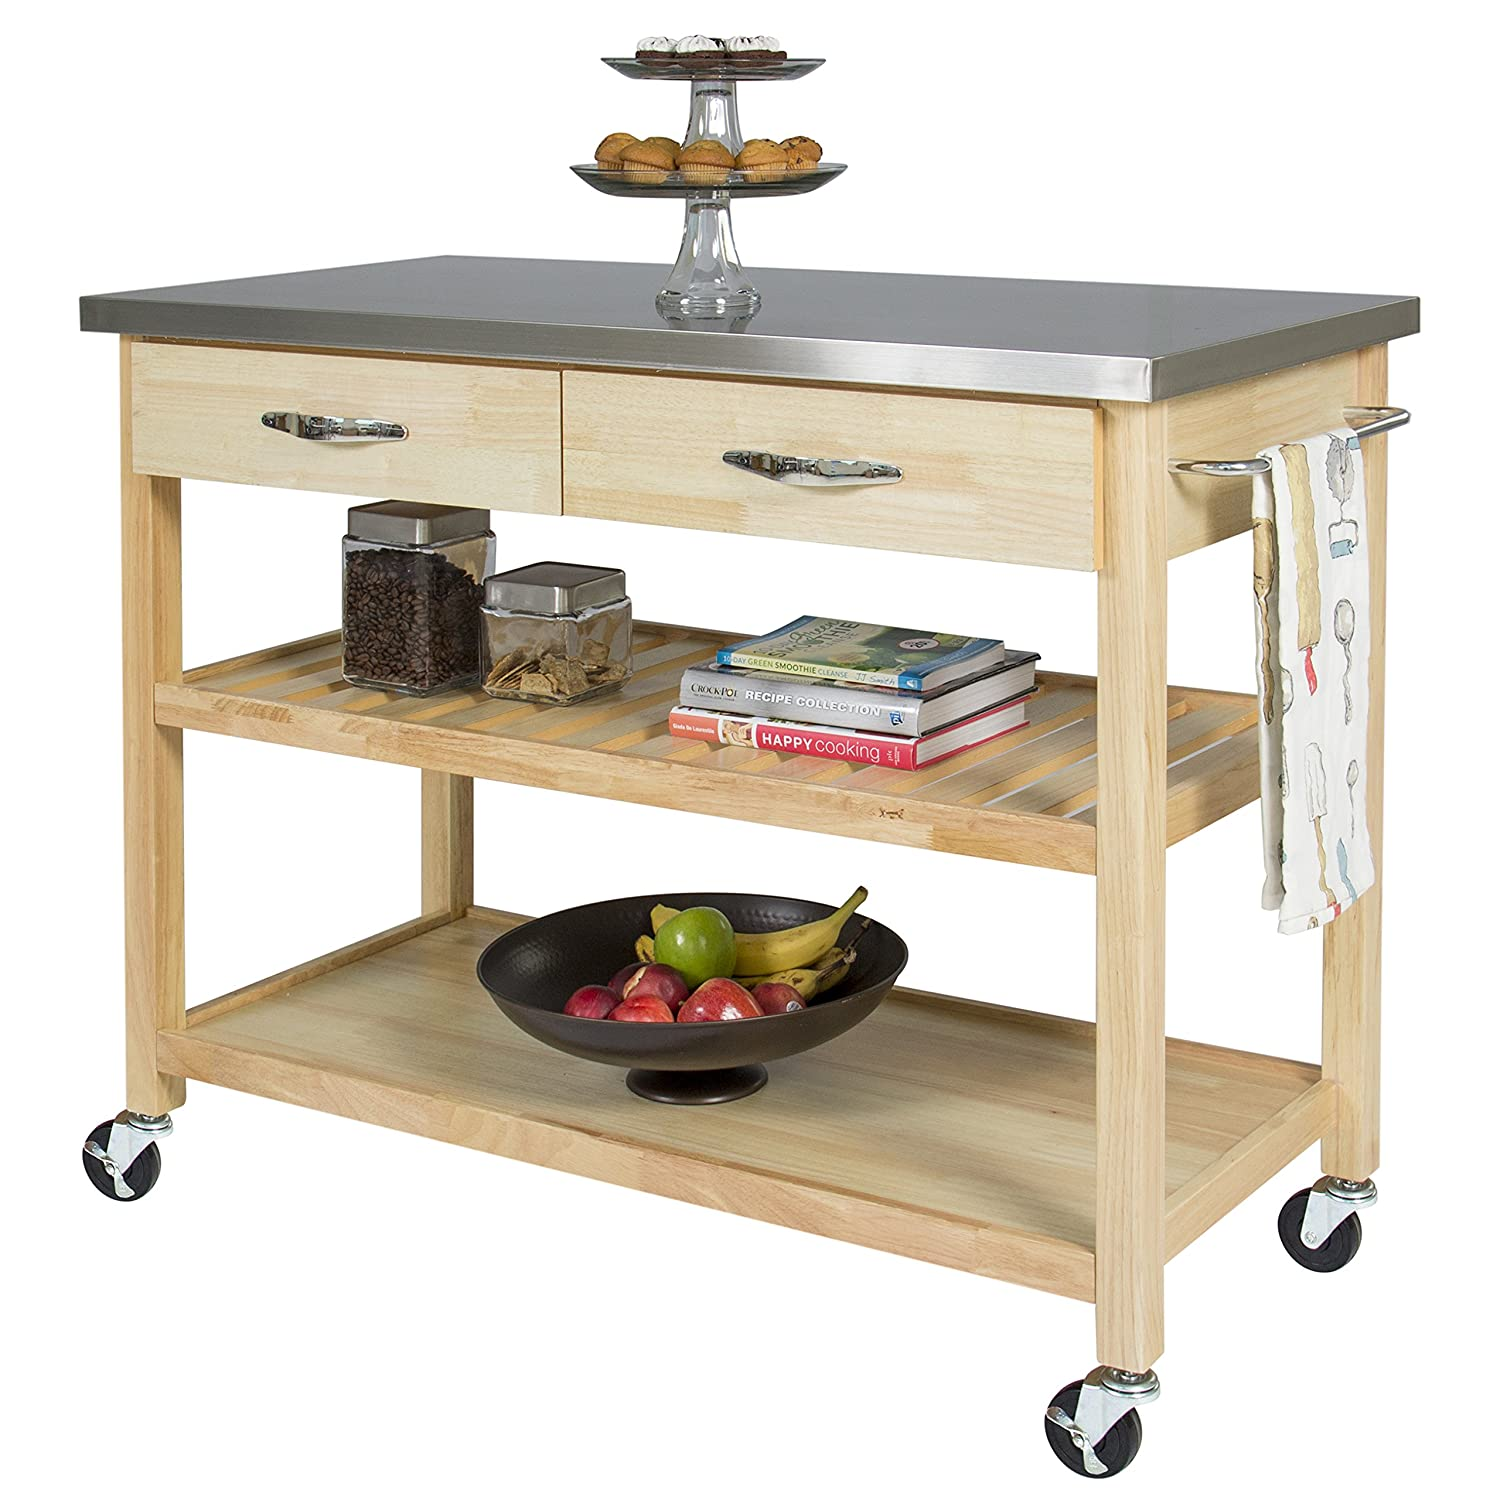 Amazon.com   Best Choice Products Natural Wood Mobile Kitchen Island  Utility Cart With Stainless Steel Top Restaurant   Kitchen Islands U0026 Carts